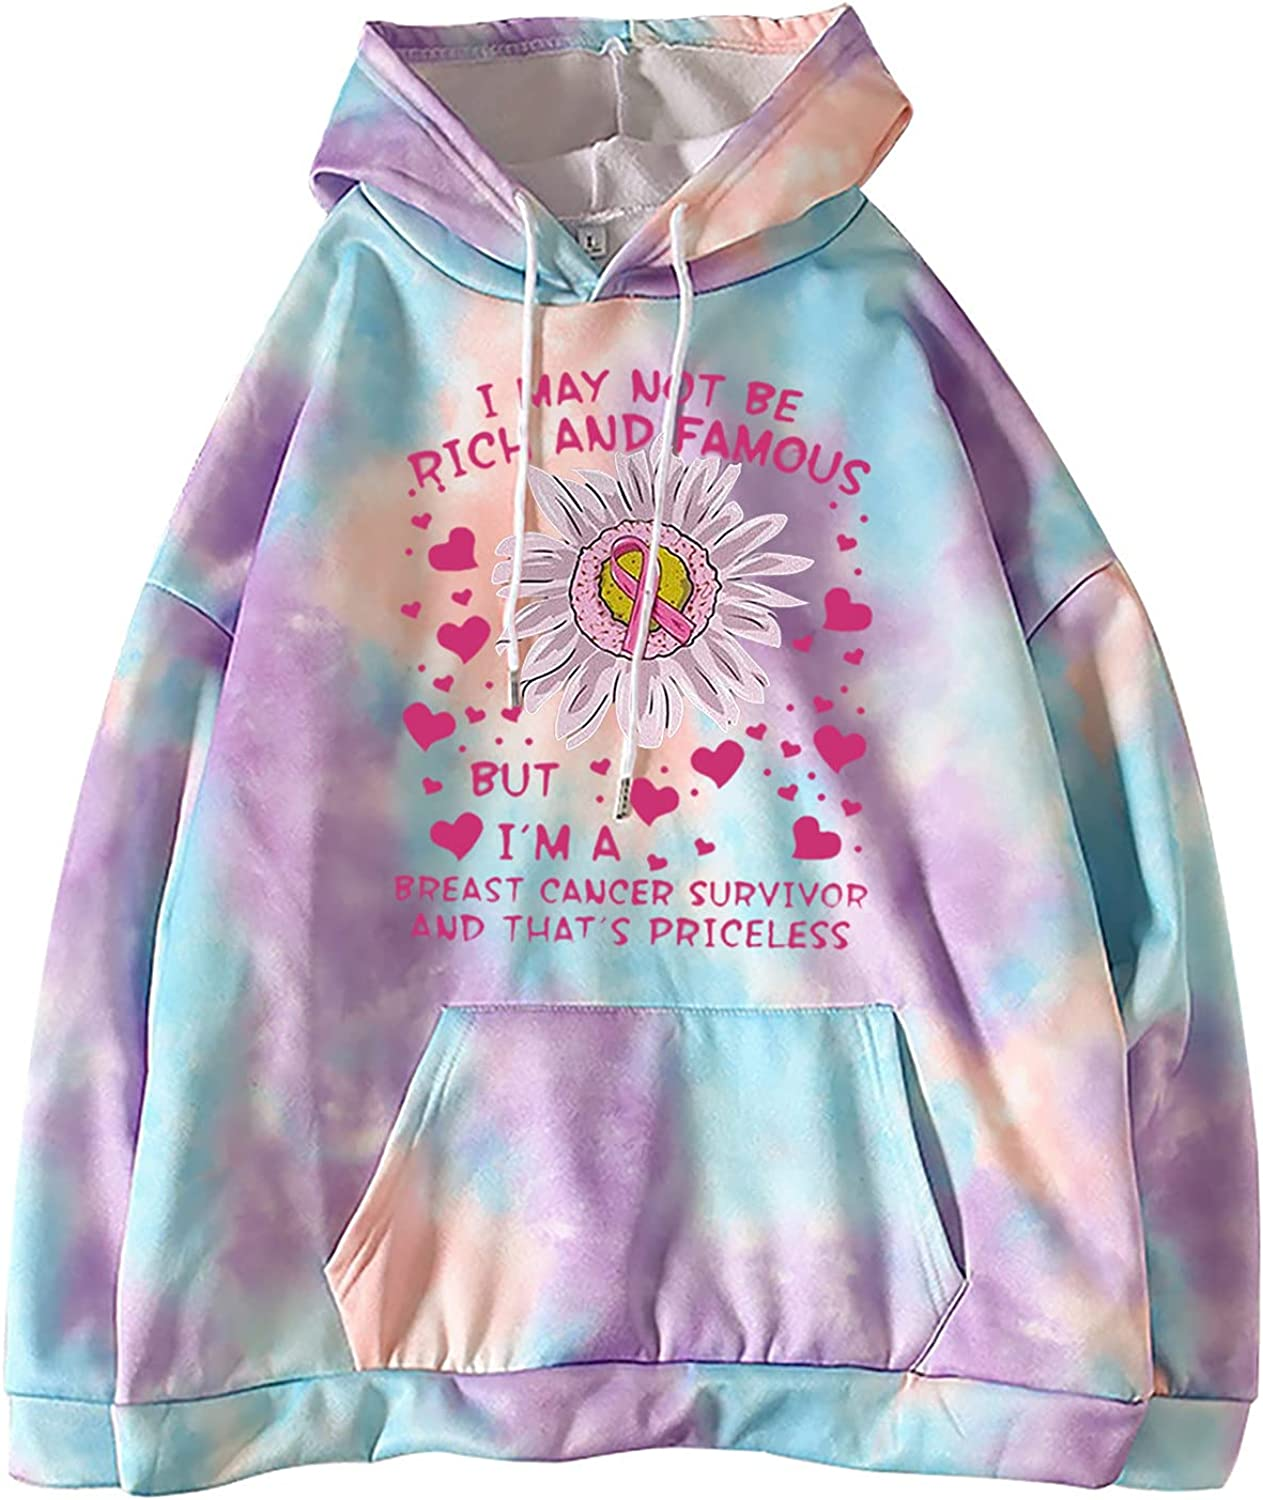 Breast Cancer Awareness Long Sleeve Print Hoodies For Women With Pockets Casual Cozy Loose Tie Dye Sweatshirt Tops